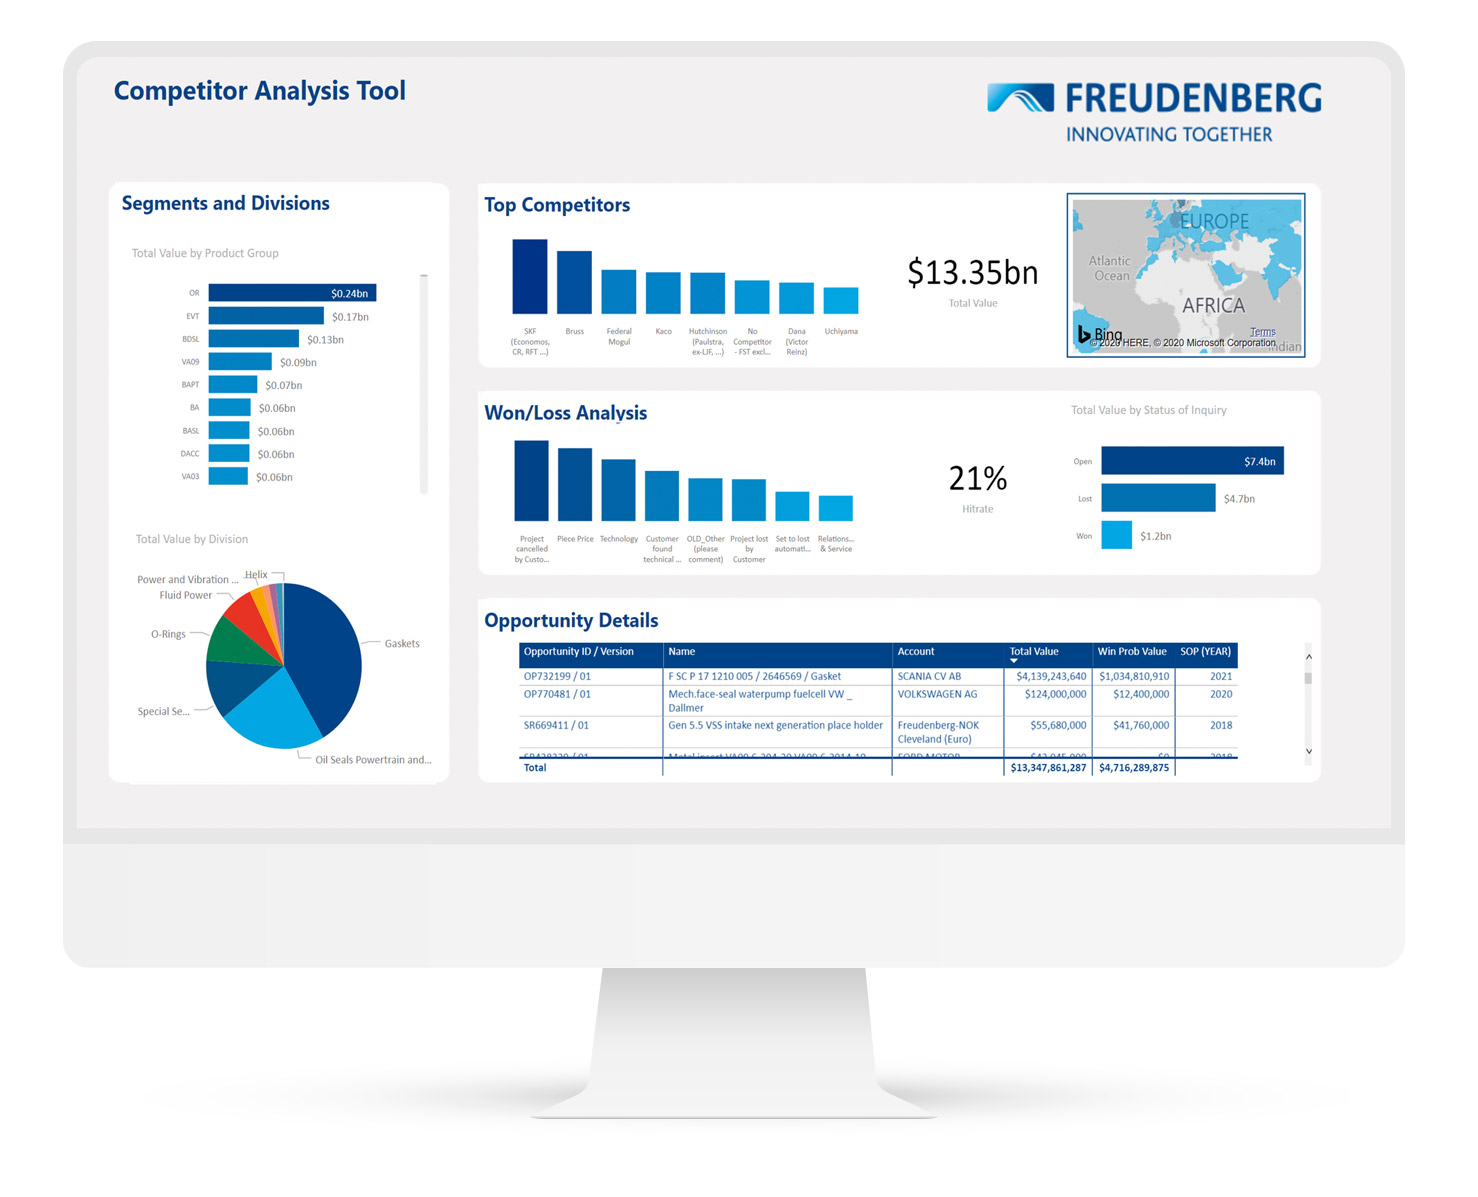 Freudenberg Power BI solution